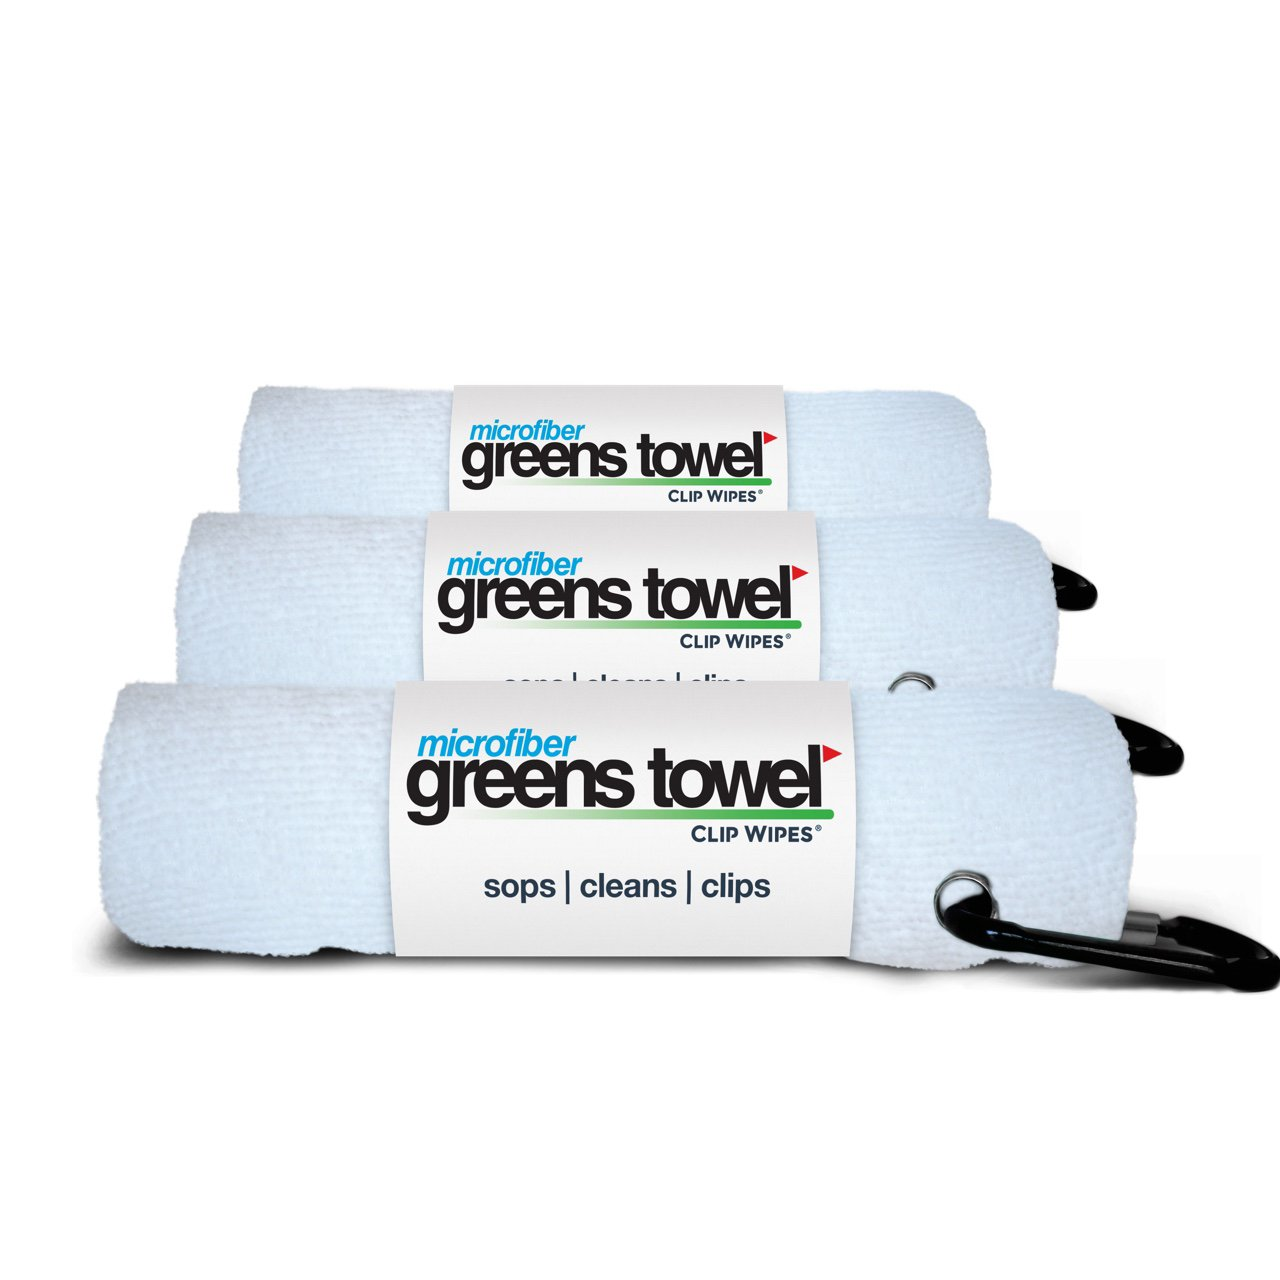 3 Pack of White Microfiber Golf Towels by Greens Towel